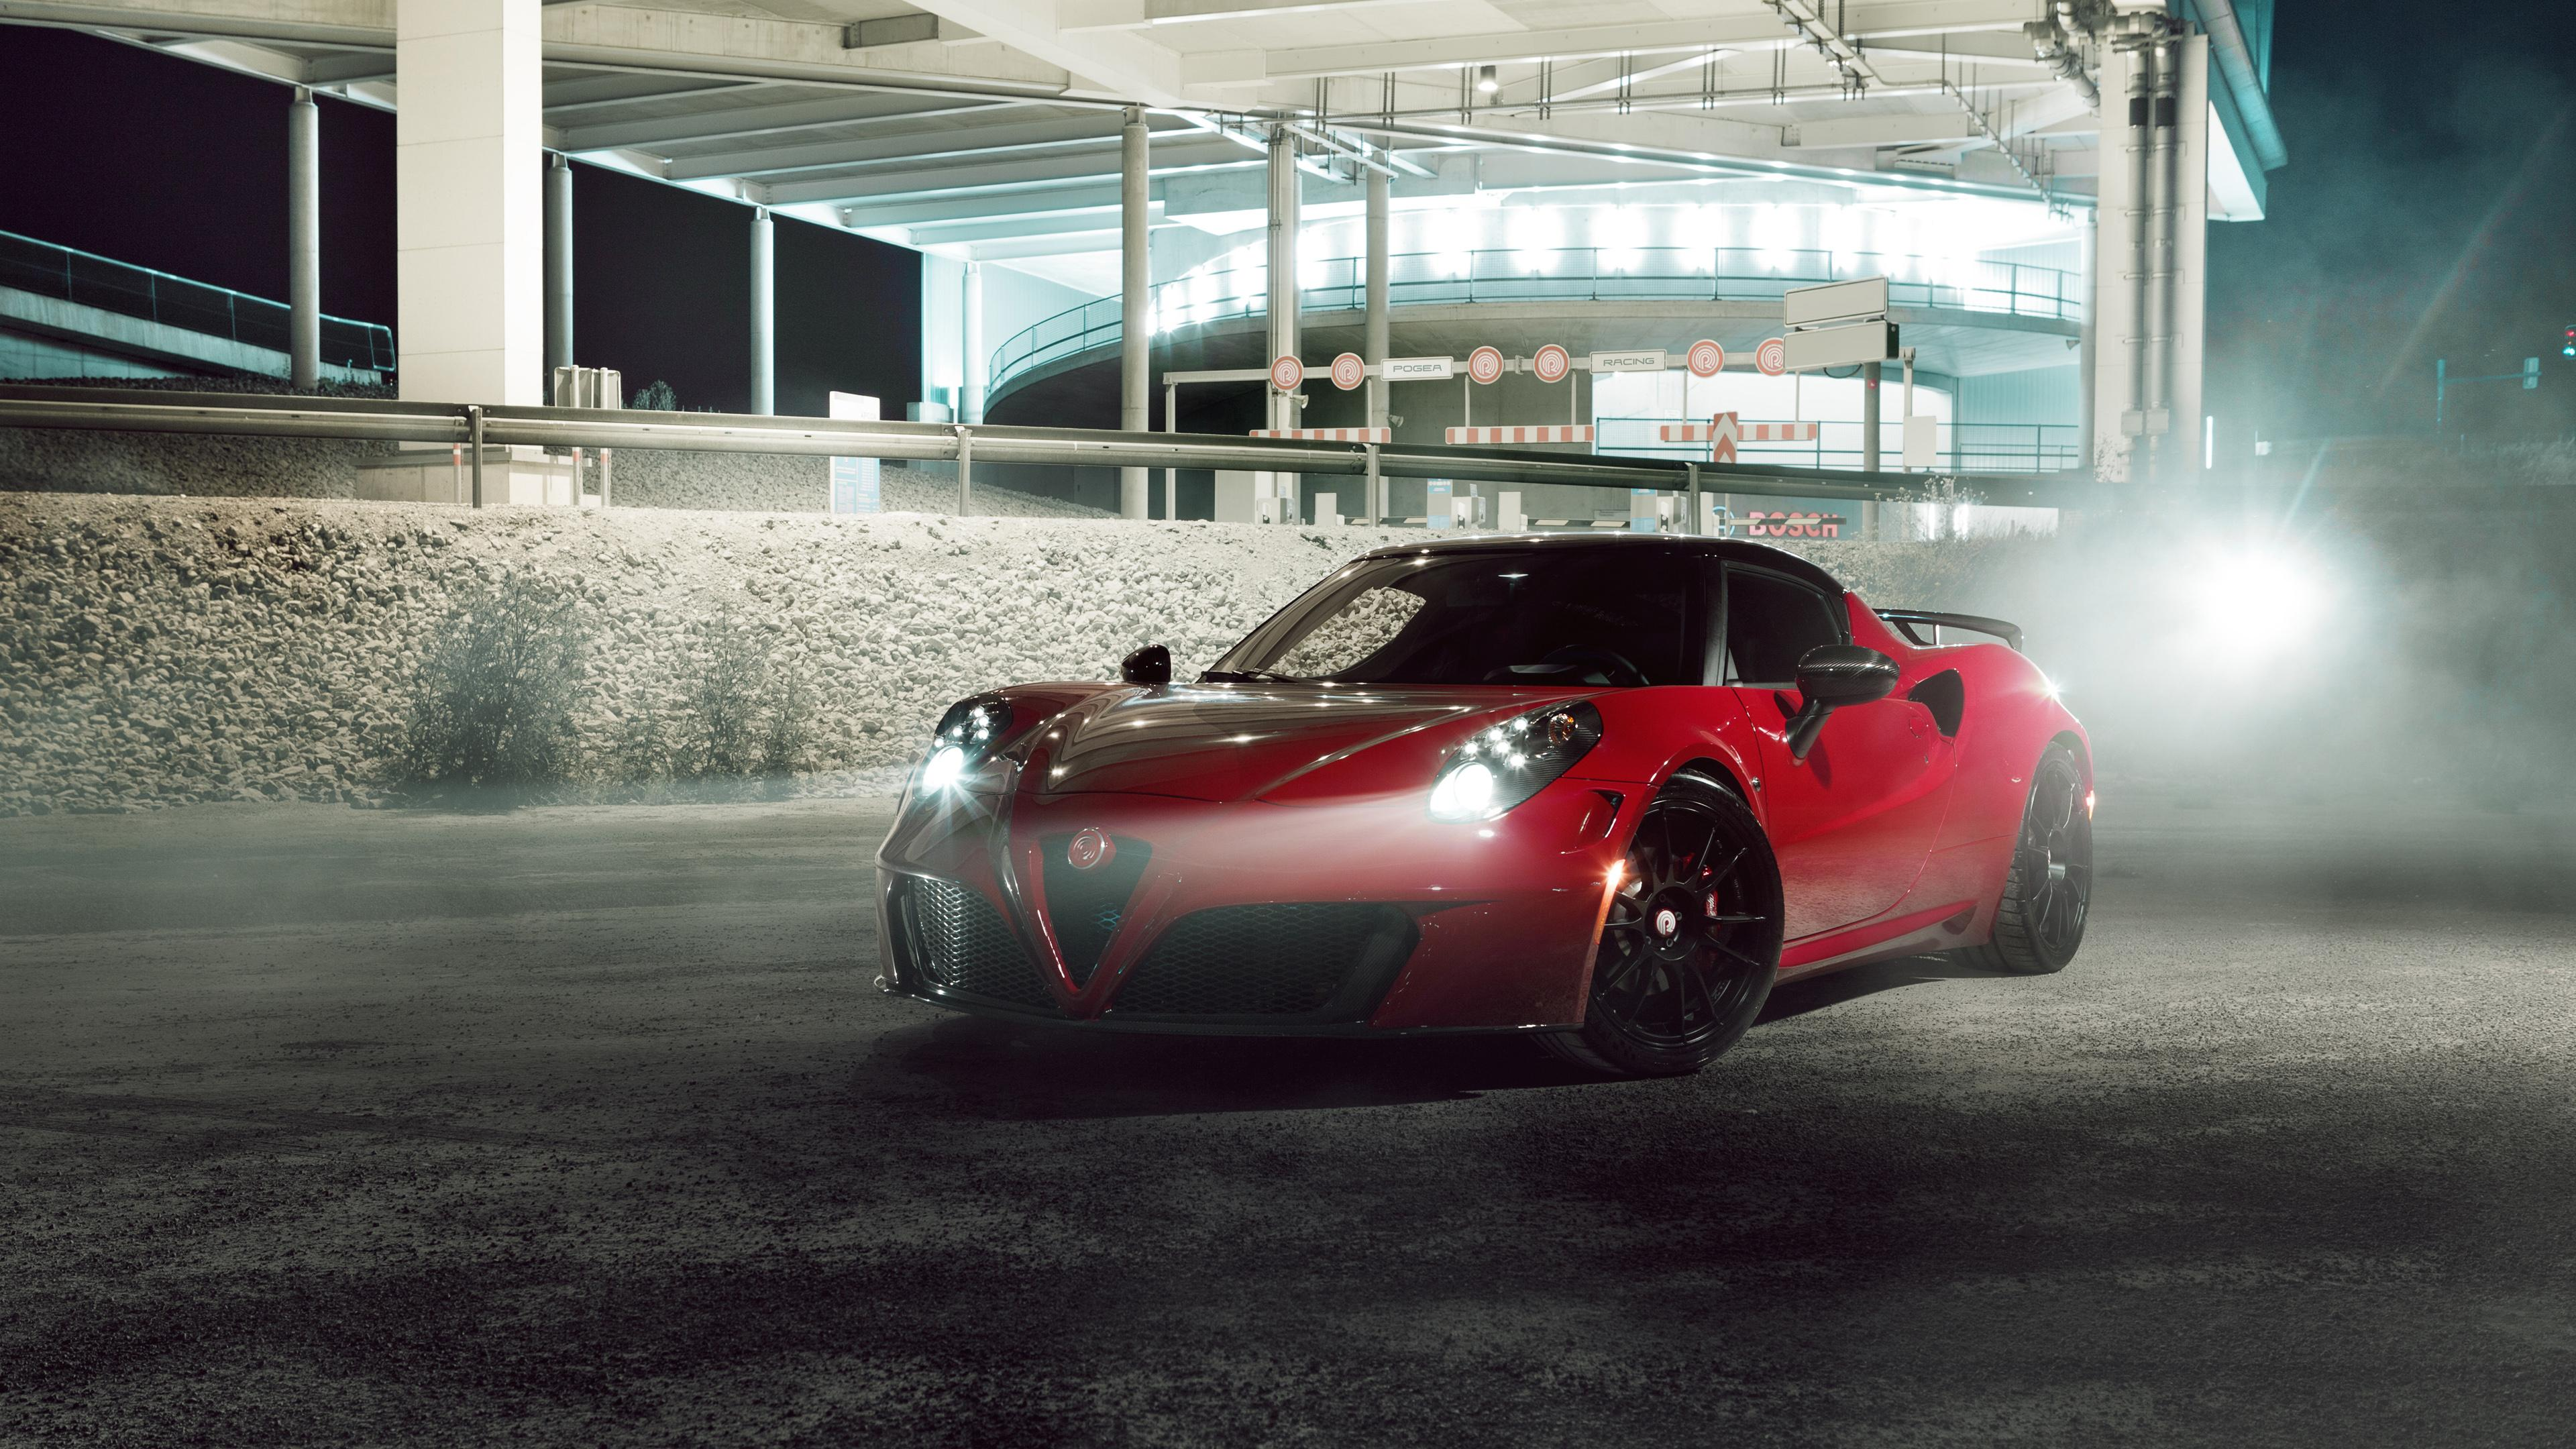 1366x768 Alfa Romeo 4c By Pogea Racing 1366x768 Resolution Hd 4k Wallpapers Images Backgrounds Photos And Pictures